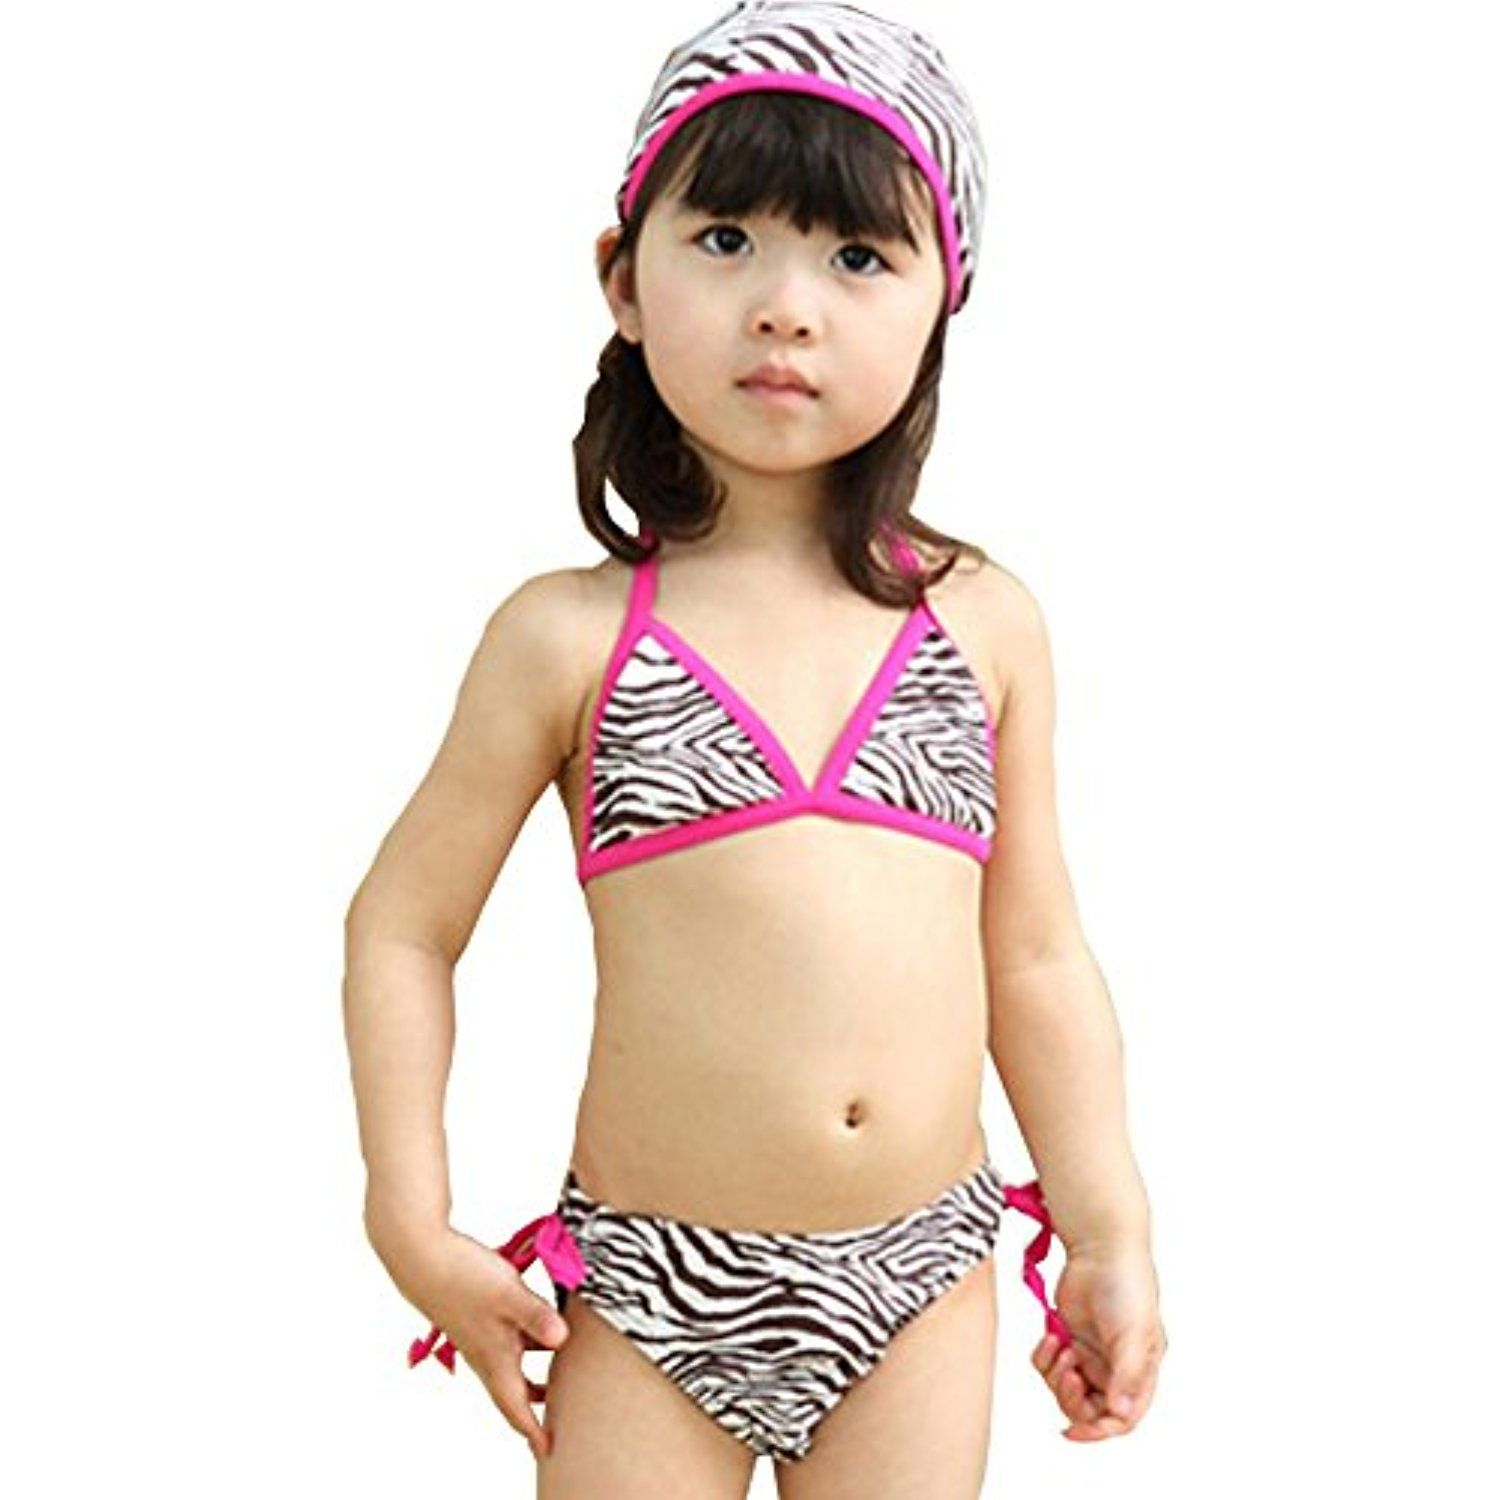 cc55d5cf83e97 Zebra Pattern Little Girls Swimsuit Kids Two-pieces Bikini Swimwear 5T Rose  ** Click image for more details. (This is an affiliate link) #Swimwear